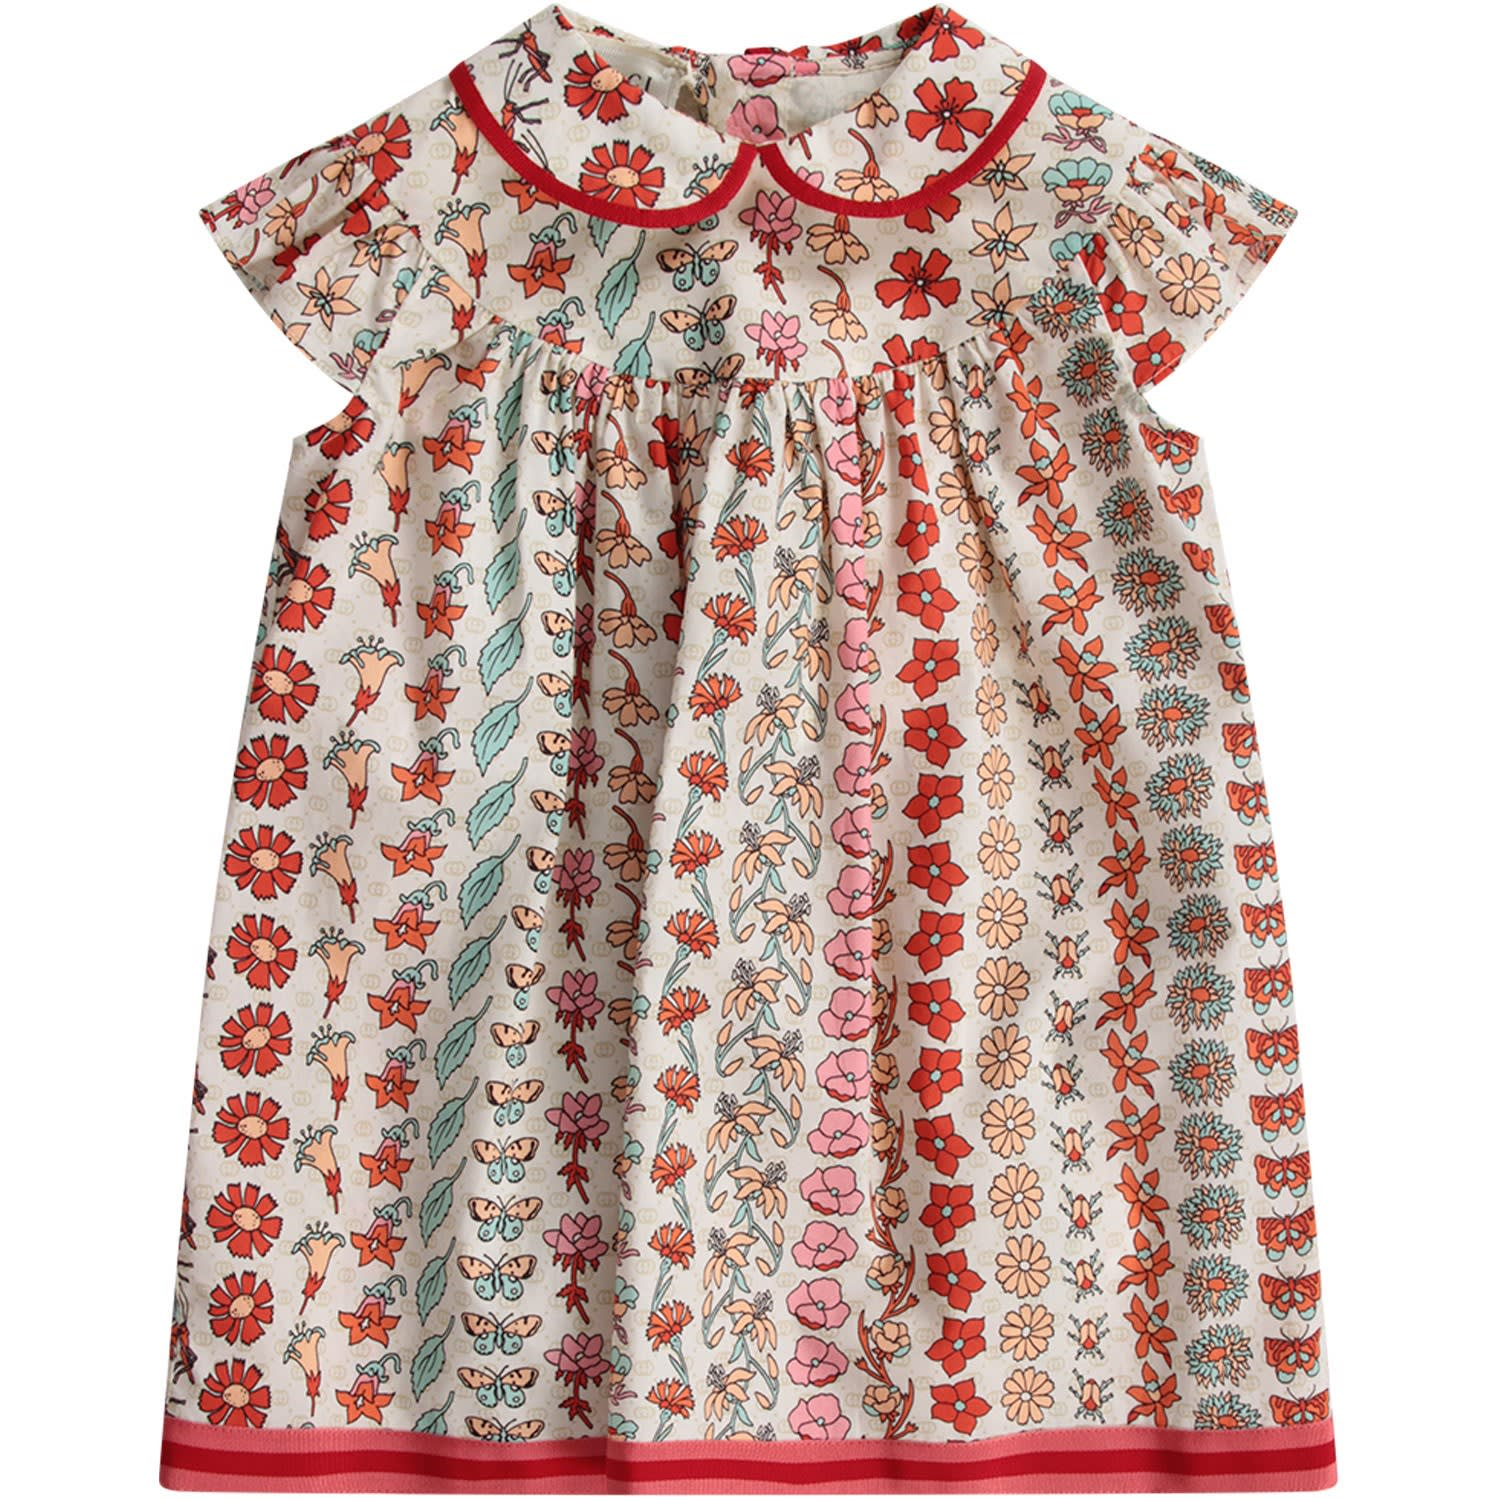 Buy Gucci Ivory Babygirl Dress With Double Gg And Flora Prints online, shop Gucci with free shipping